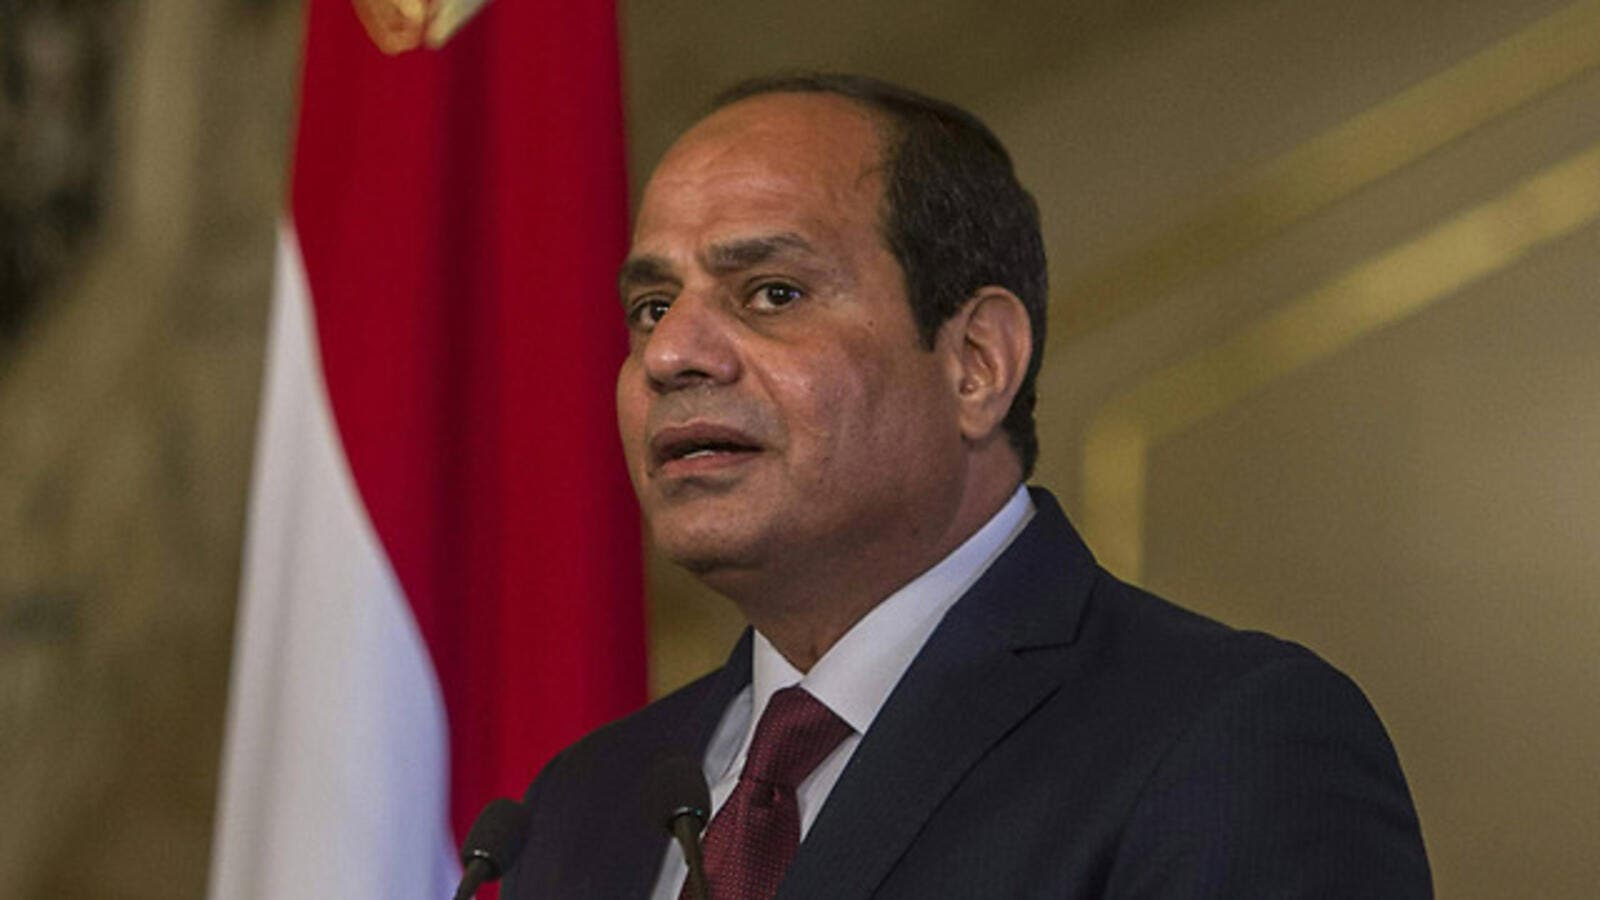 Egyptian President Abdel Fattah a-Sisi. (AFP/File)